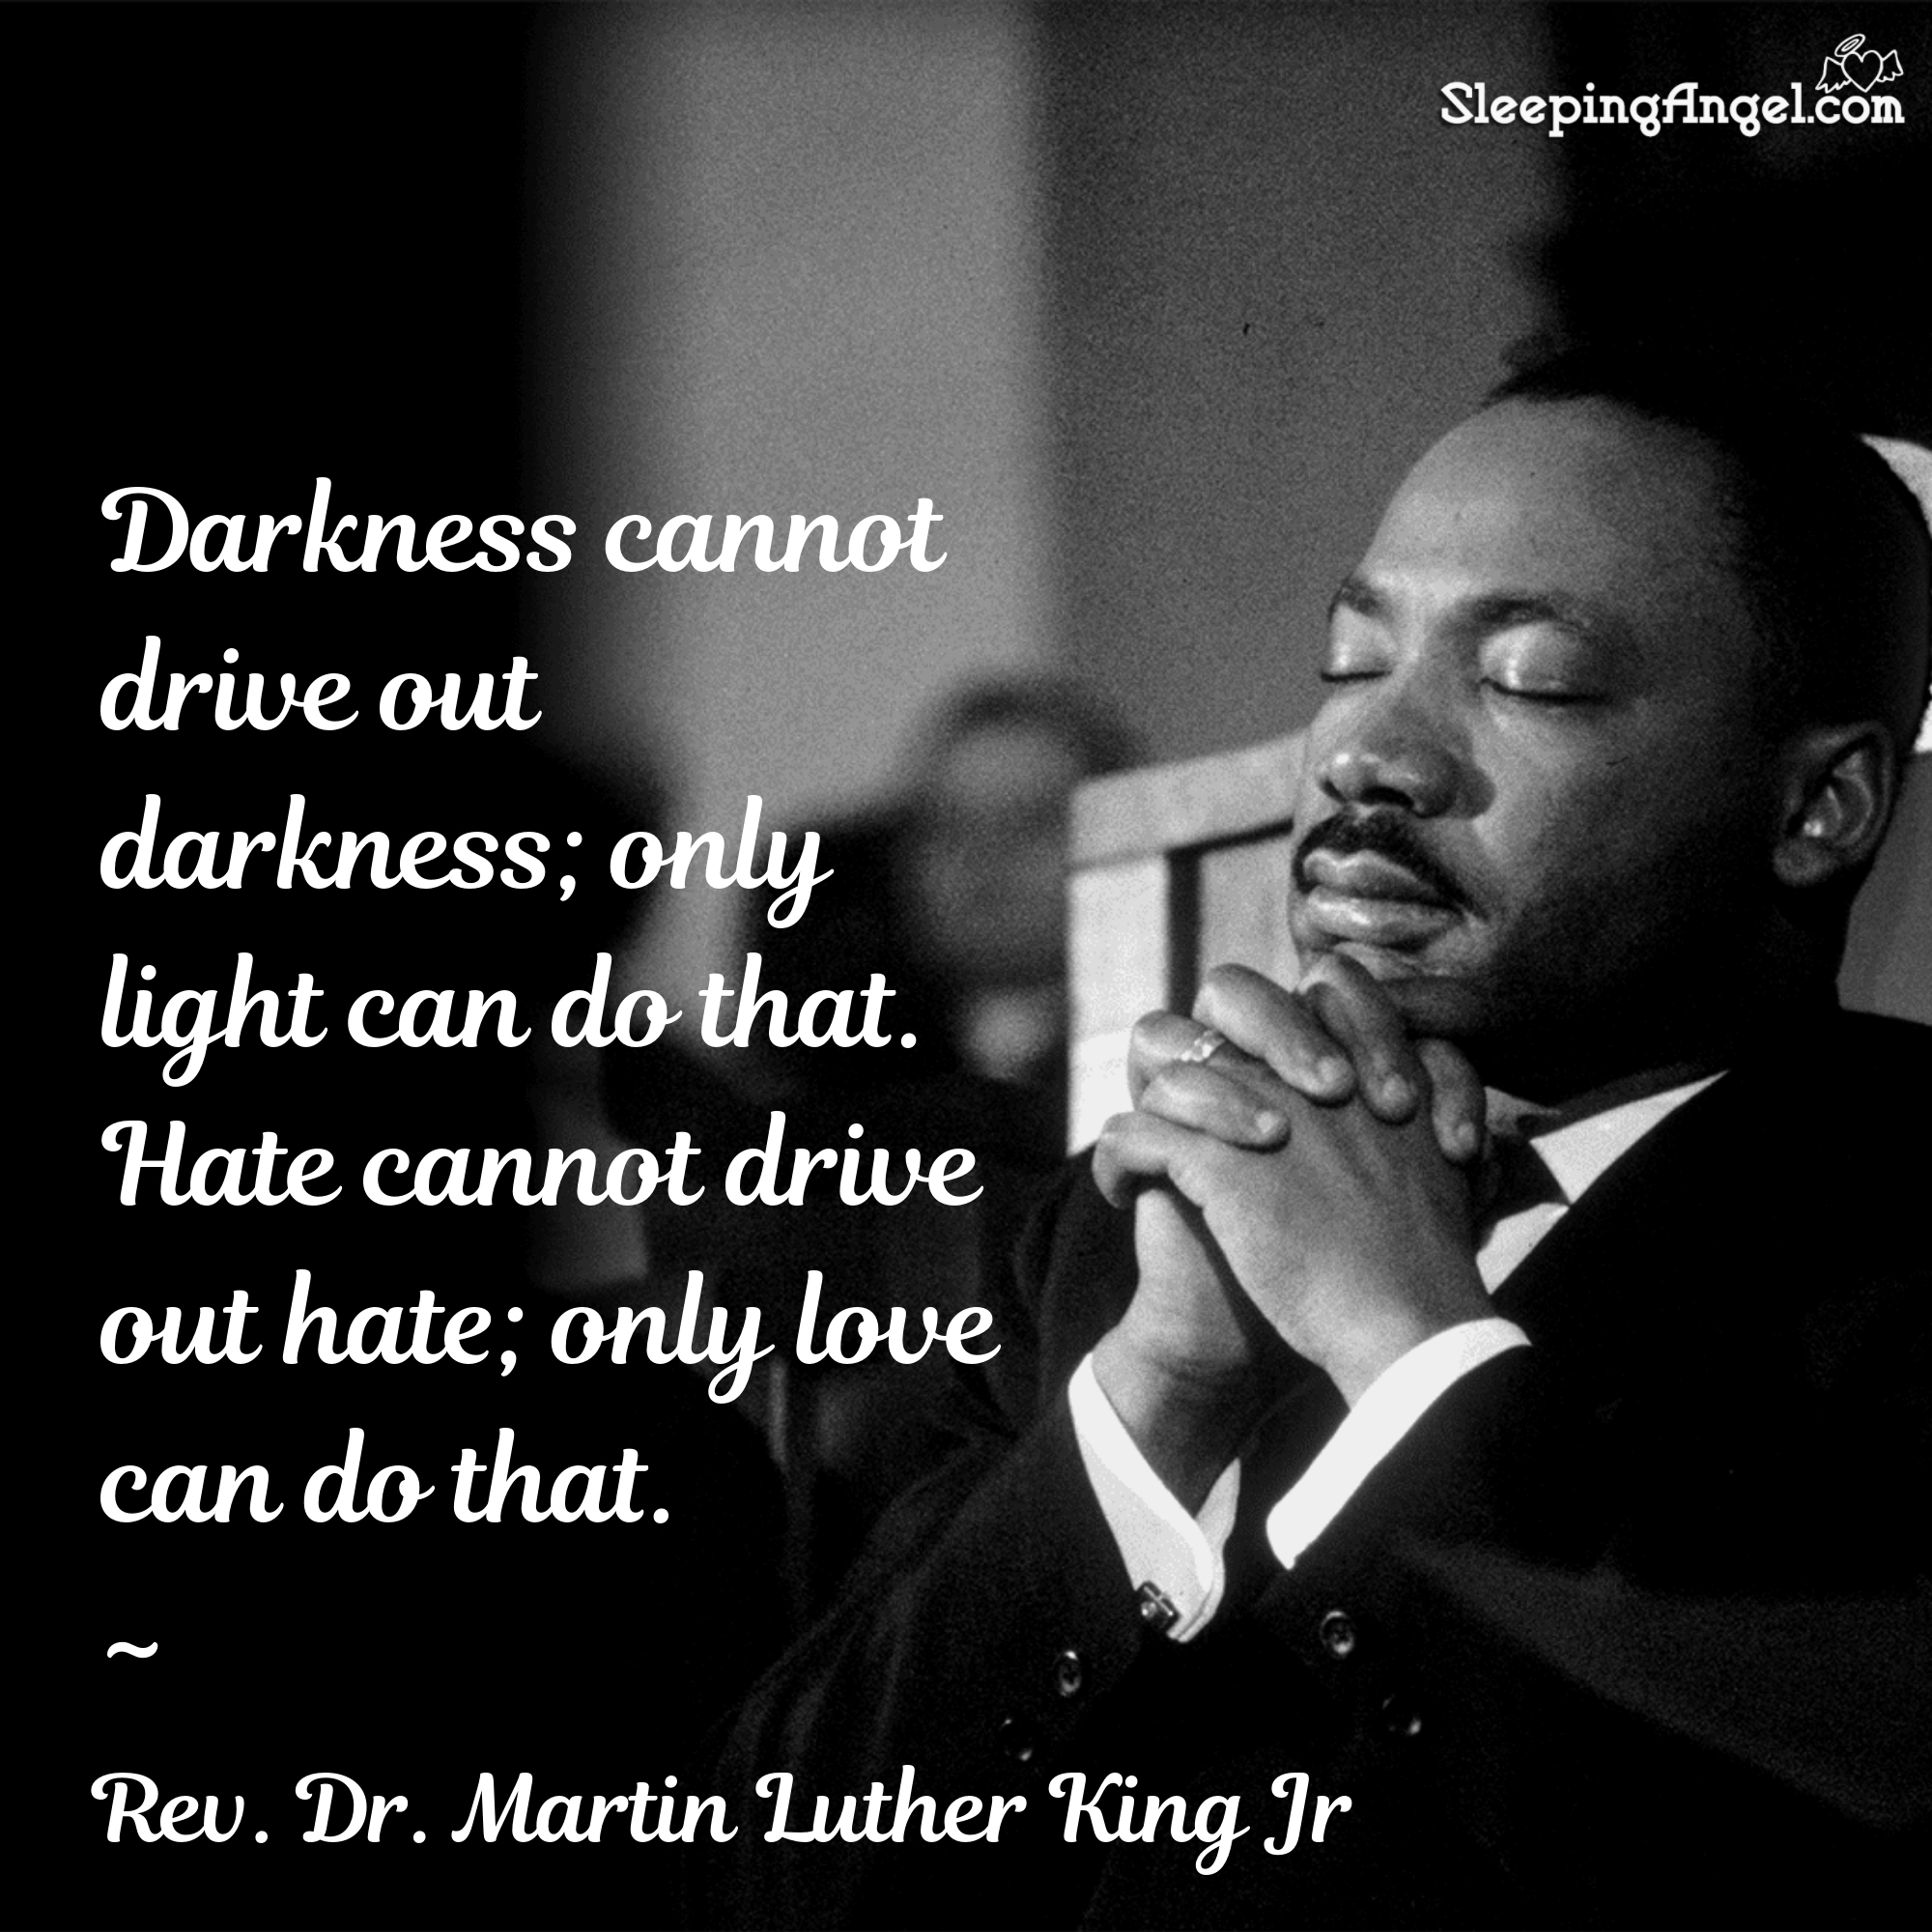 Rev. Dr. Martin Luther King Jr. Quote